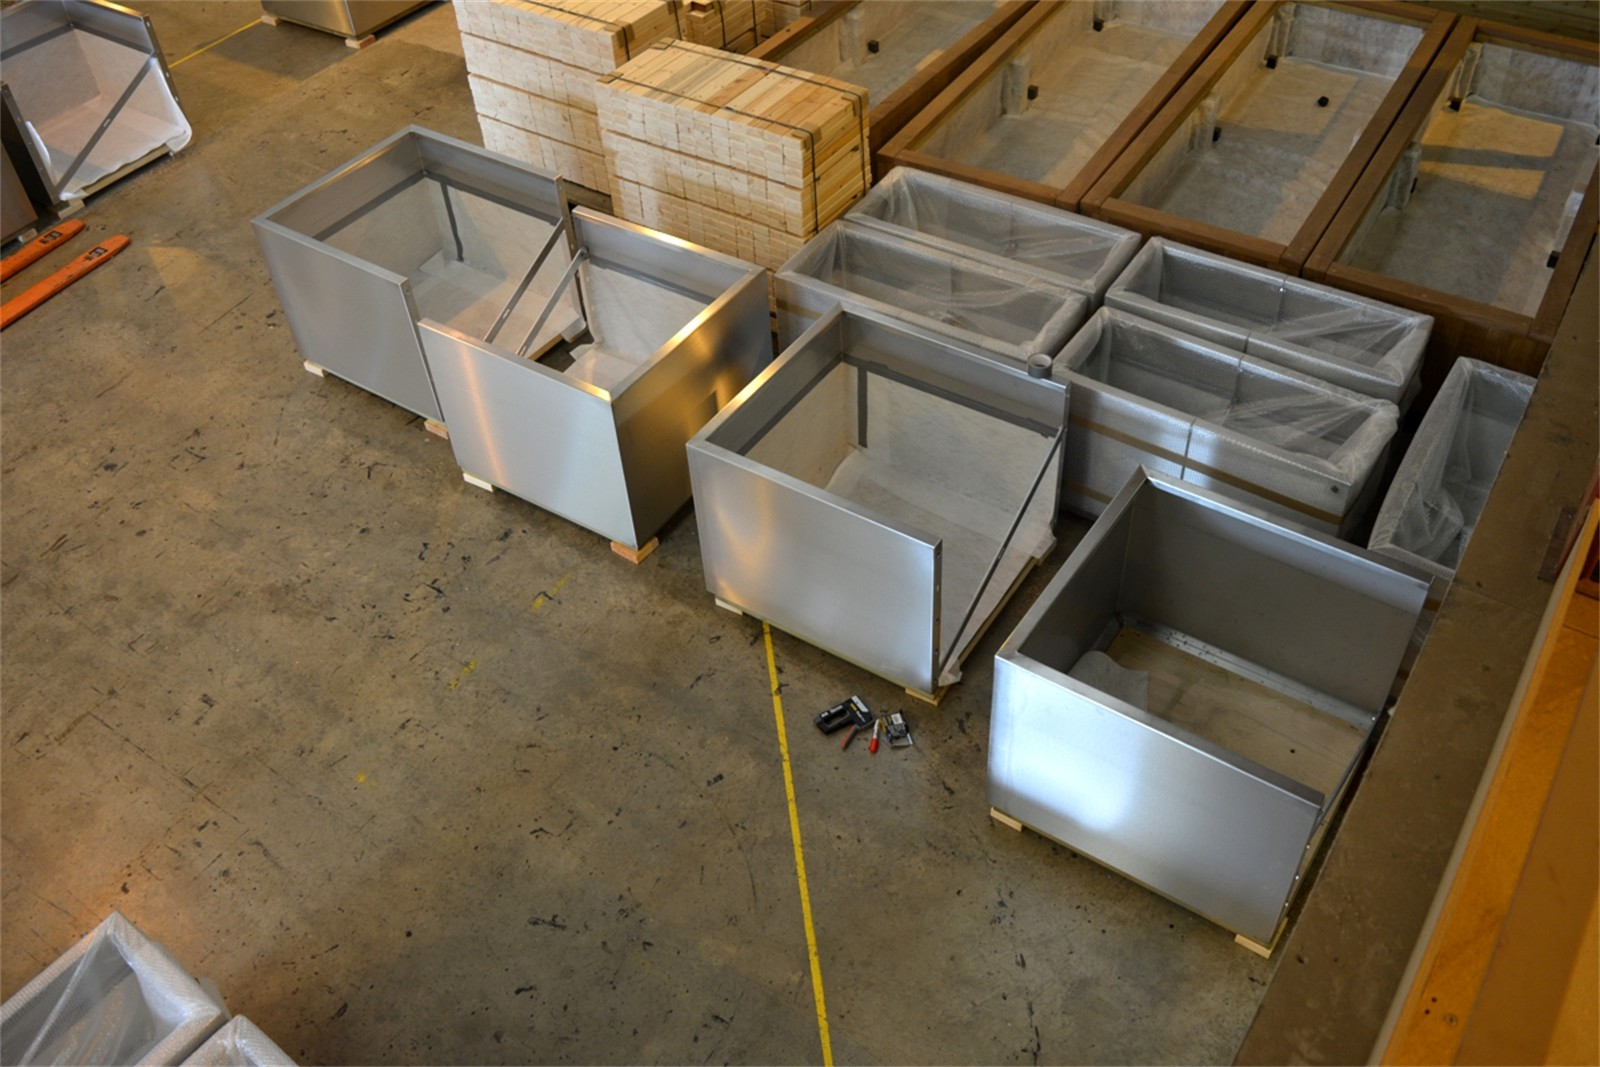 c121t03 - Gretton stainless steel planters in manufacture